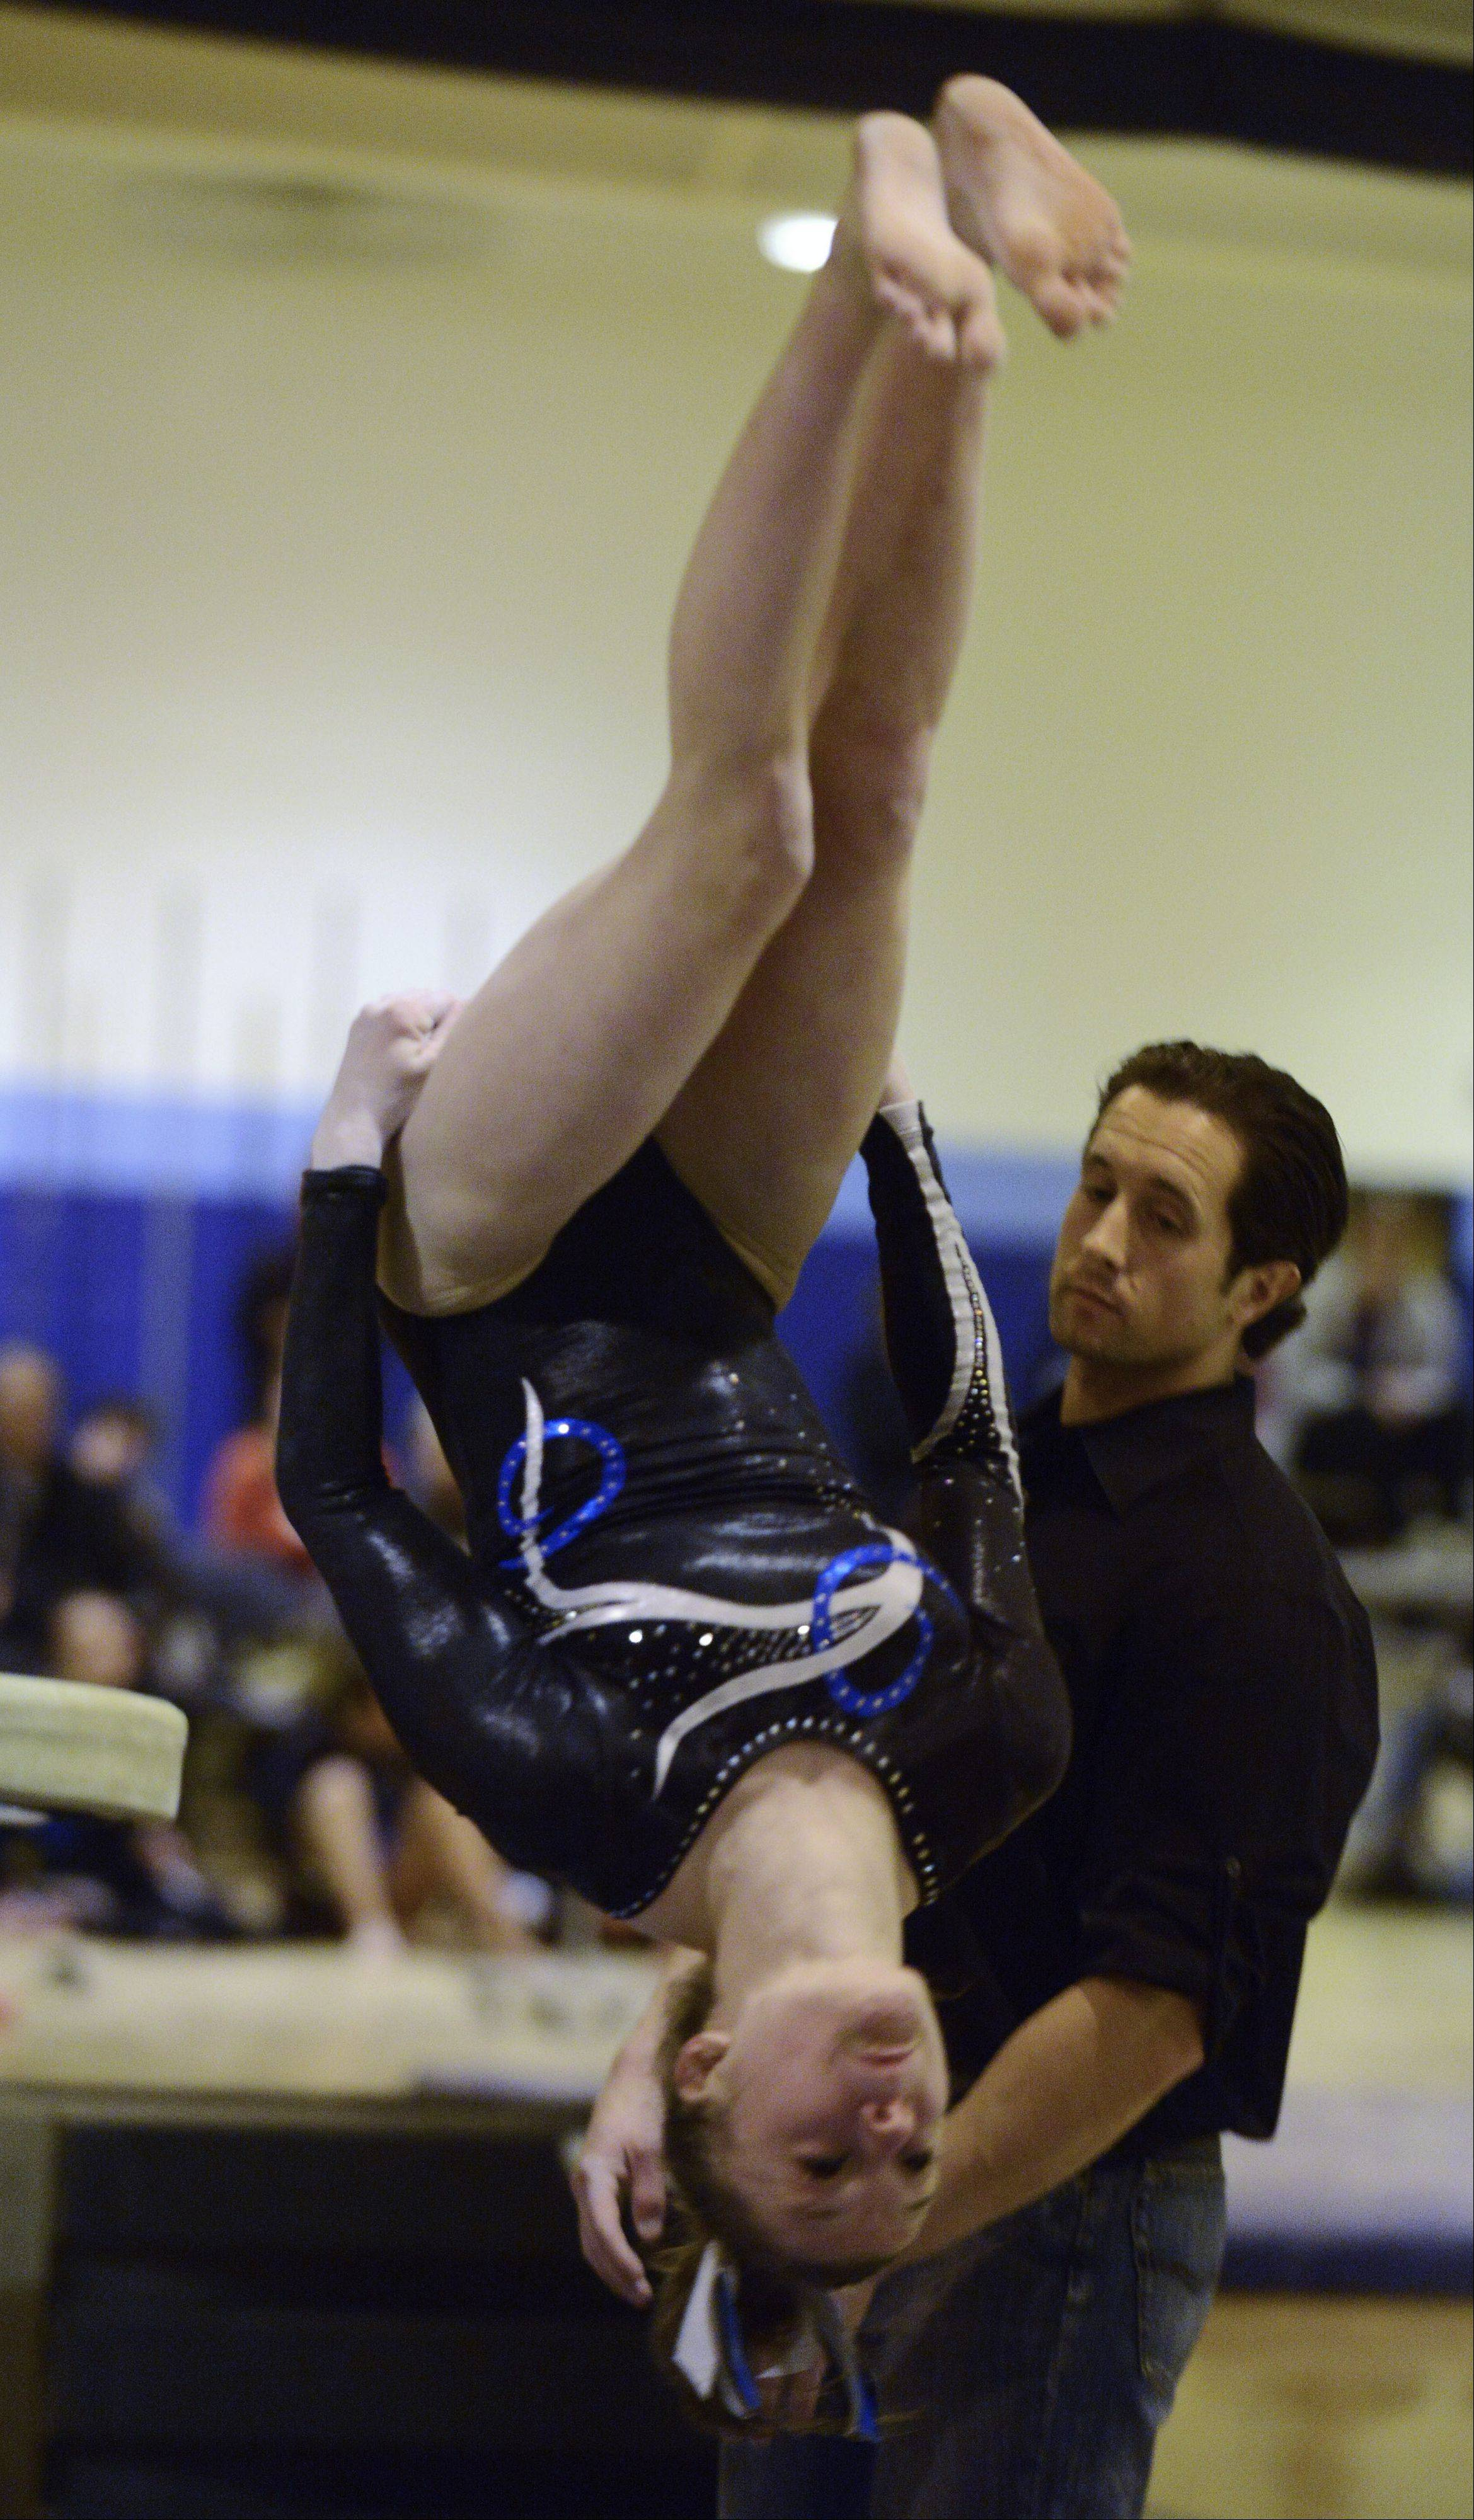 Prospect's Maddie Larock competes on vault during Tuesday's regional meet at Prospect.